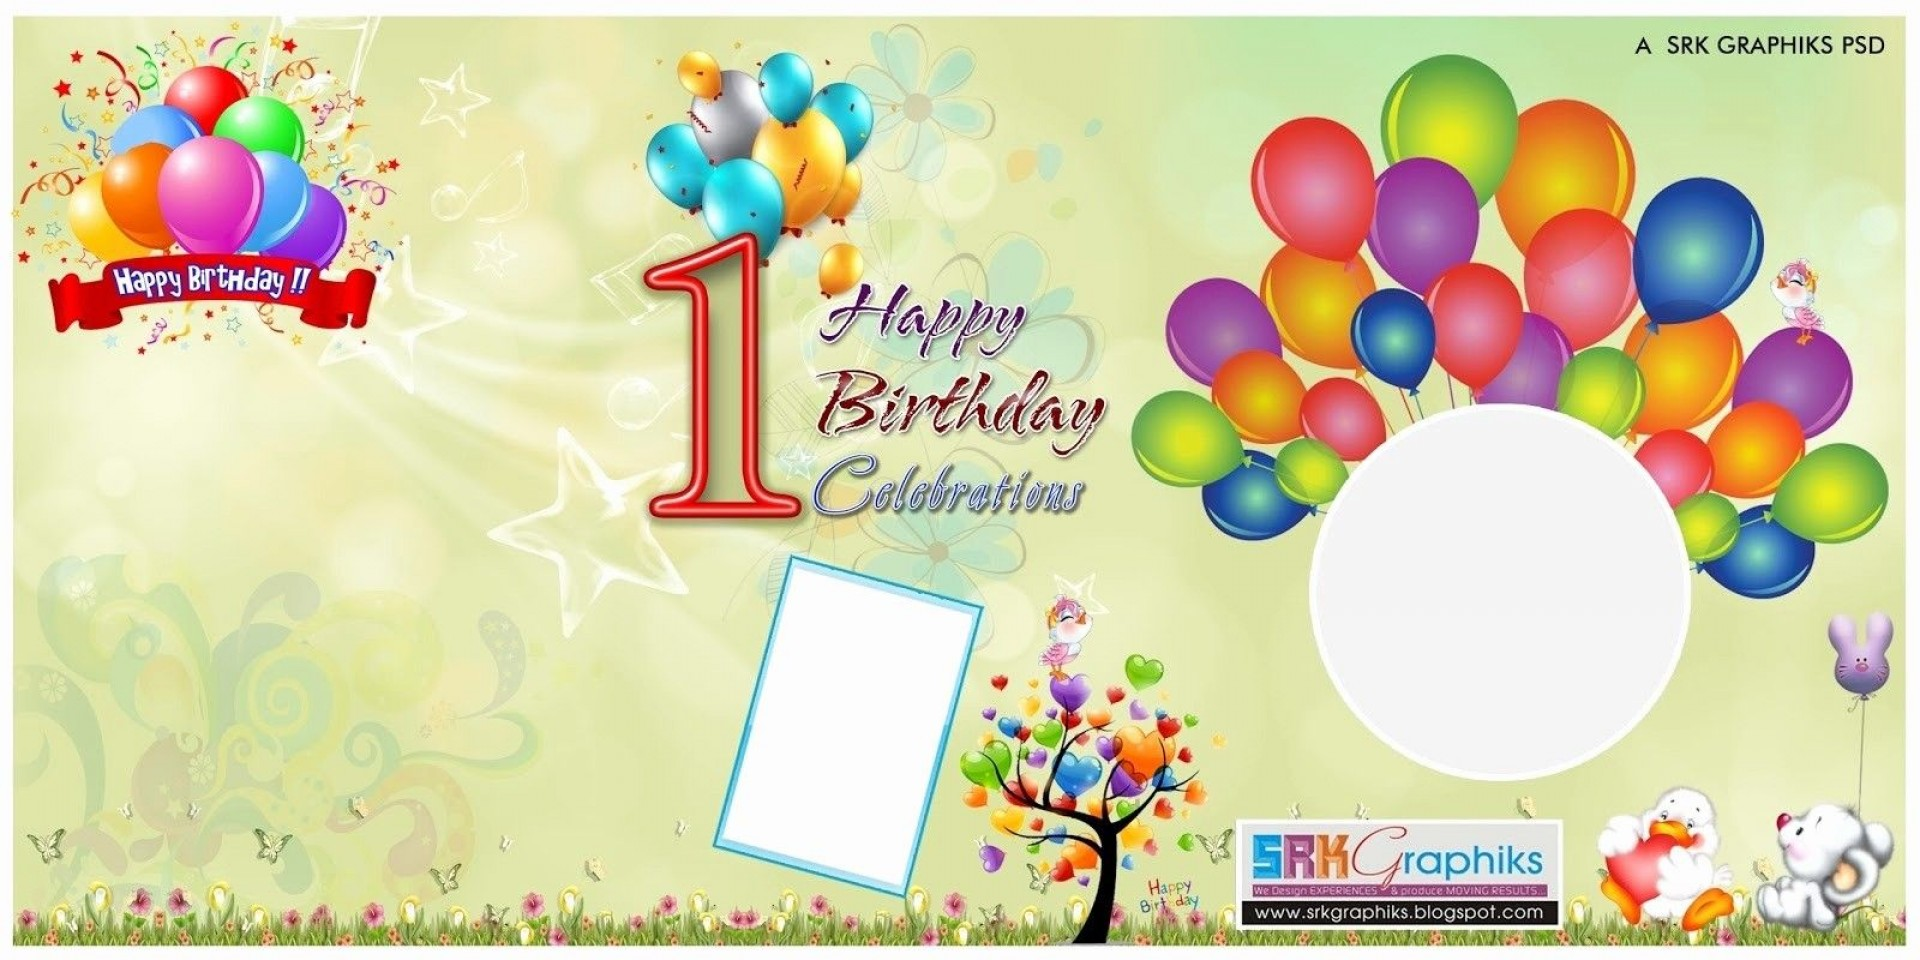 004 Frightening Birthday Card Template Photoshop Sample  Greeting Format 4x6 Free1920